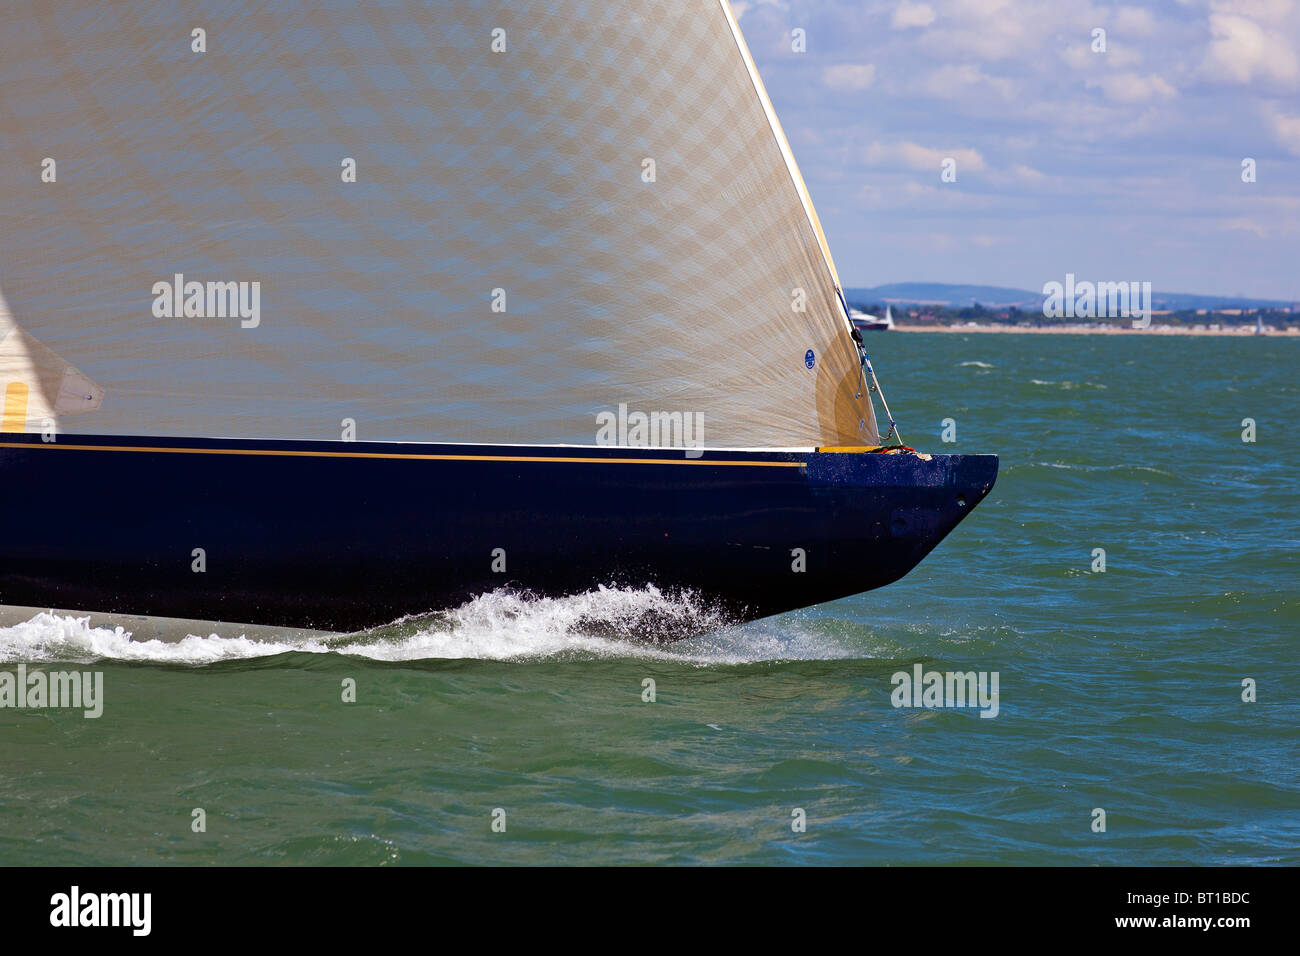 modern racing yacht bow speeding through the water with jib foresail - Stock Image